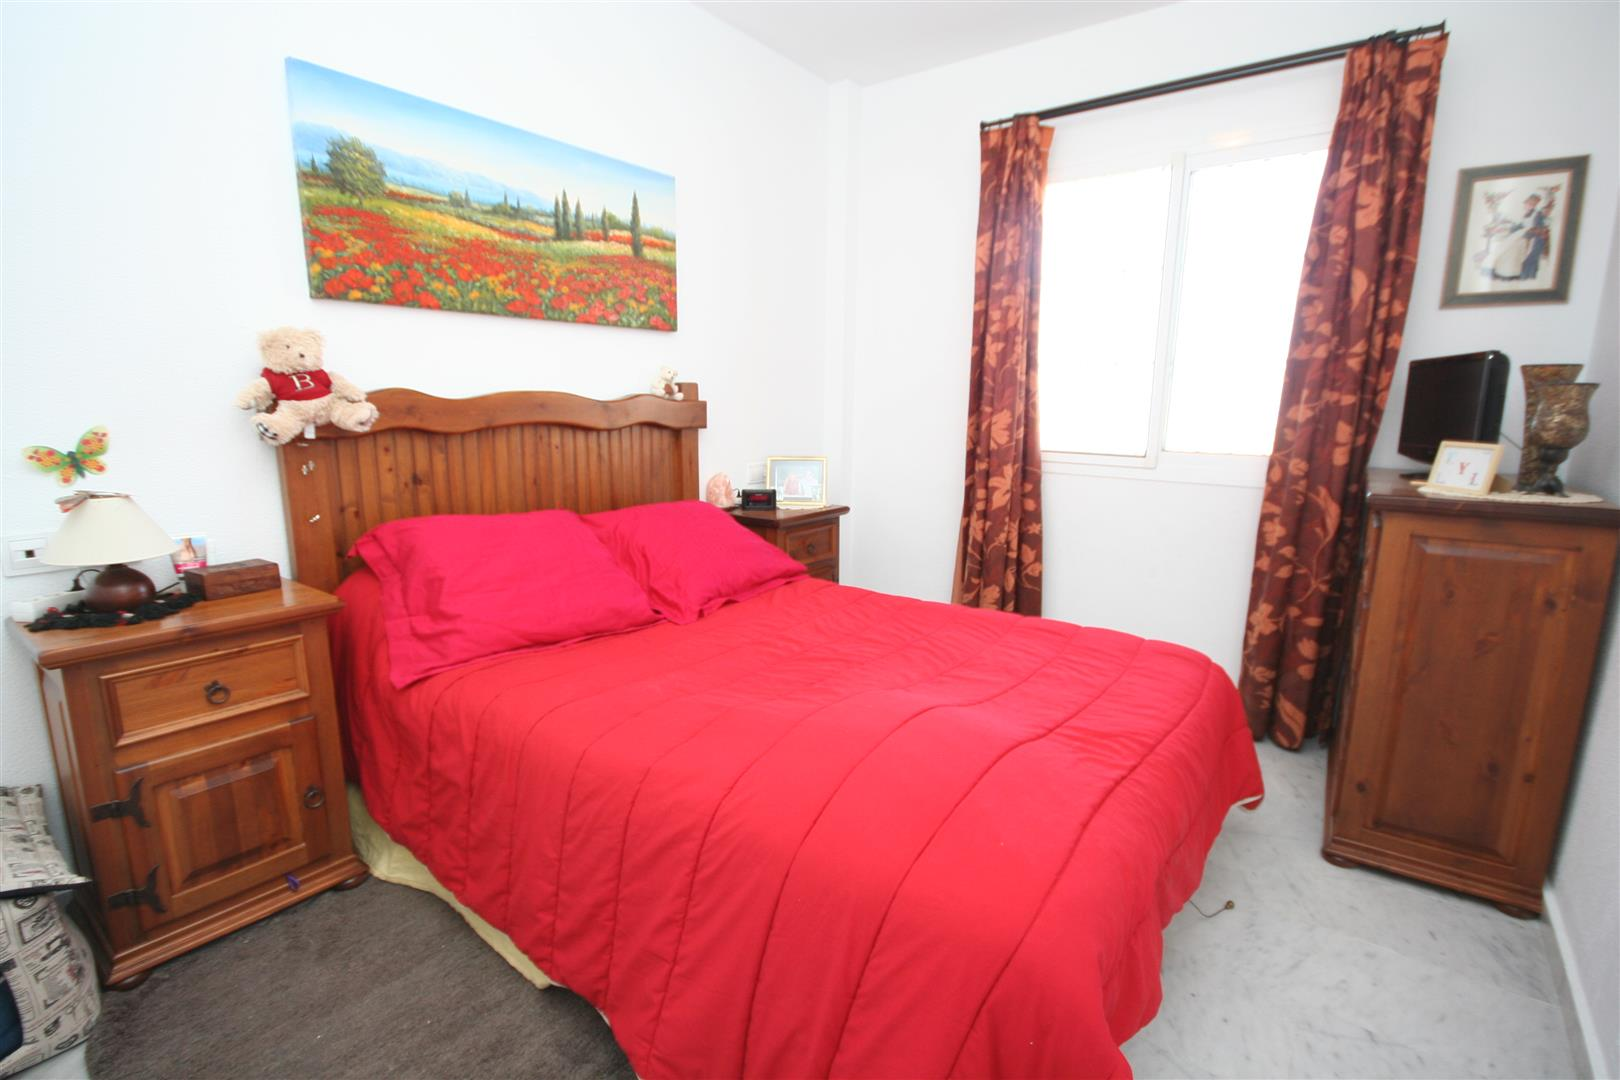 townhouse for sale in Benalmadena Pueblo - Bedroom